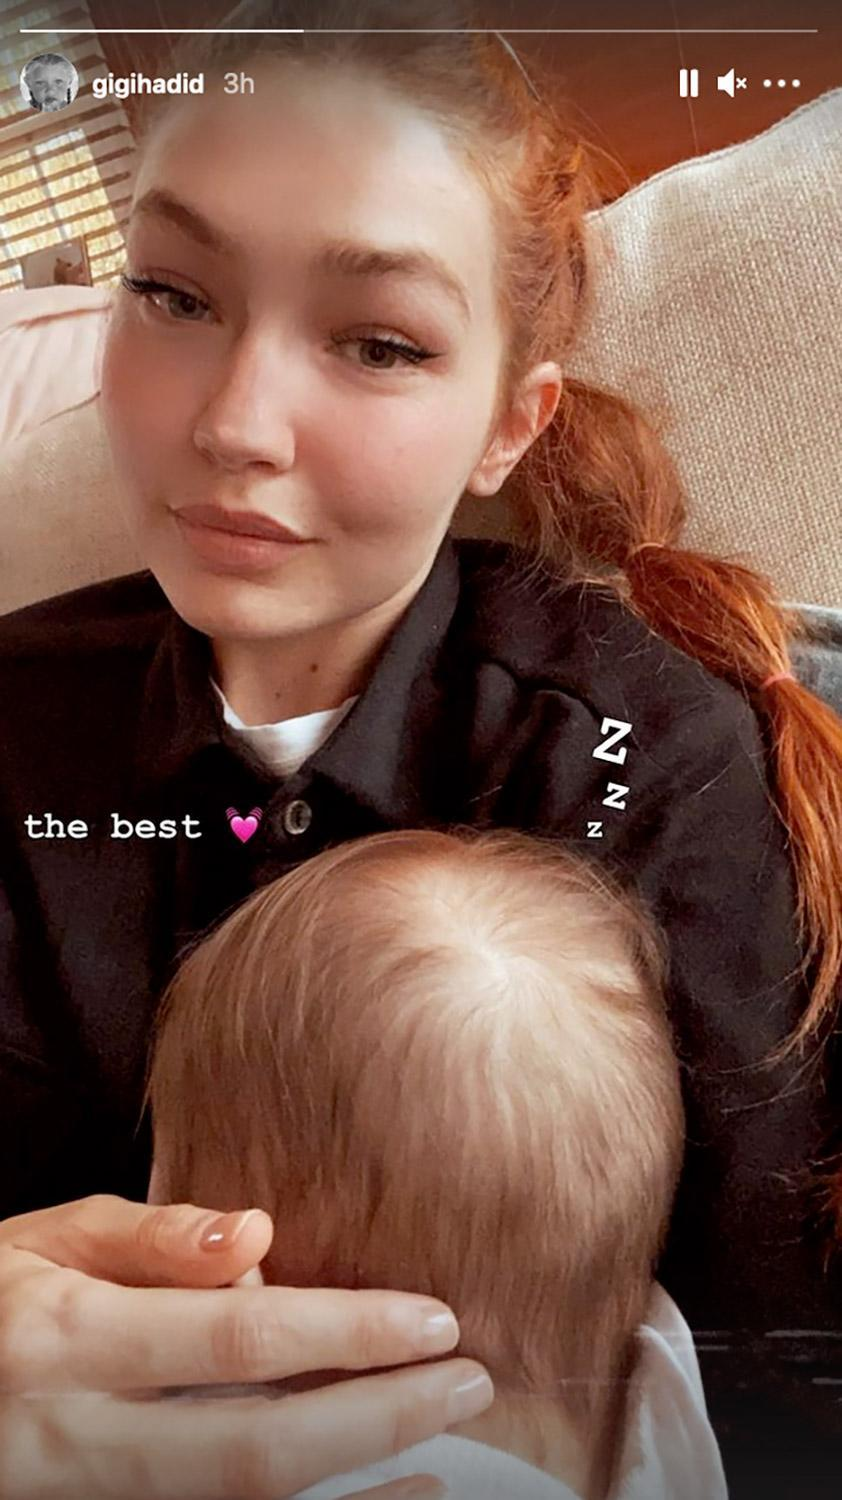 """<p>That same month, the supermodel <a href=""""https://people.com/parents/gigi-hadid-shares-nap-time-photo-of-baby-daughter-khai/"""" rel=""""nofollow noopener"""" target=""""_blank"""" data-ylk=""""slk:posted a photo"""" class=""""link rapid-noclick-resp"""">posted a photo</a> of Khai taking a nap in her arms, calling the tender moment """"the best."""" </p>"""